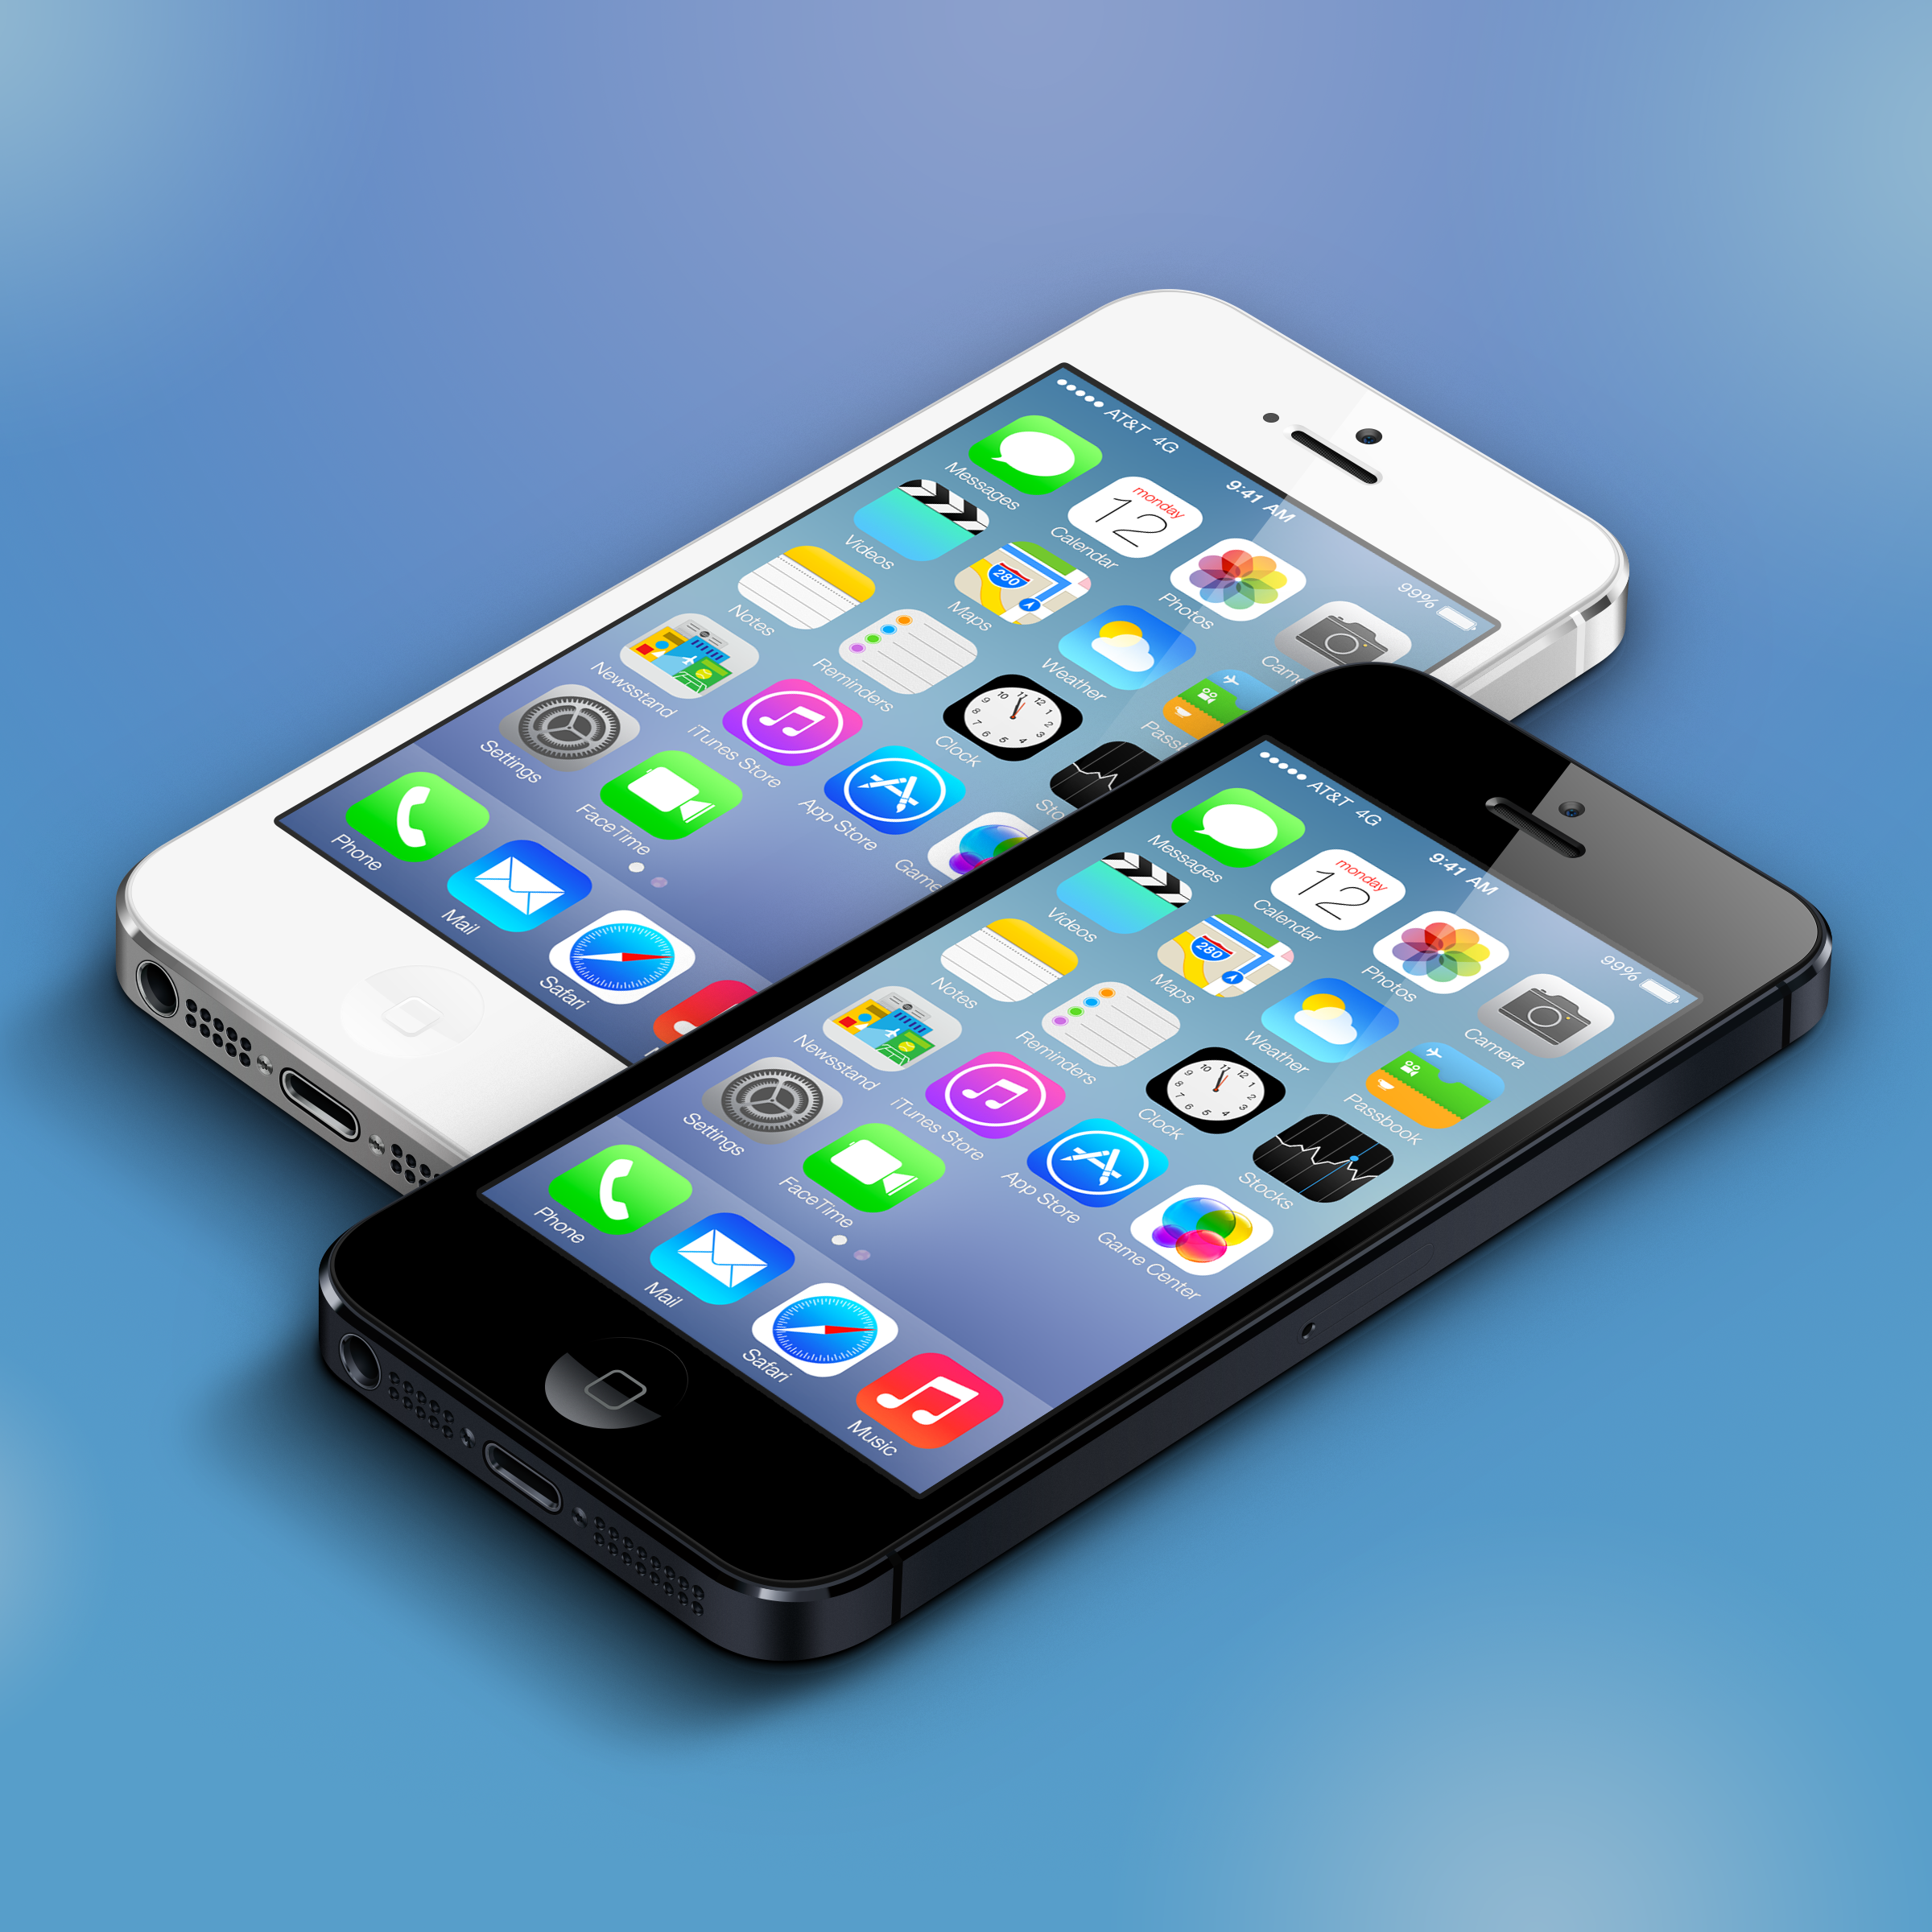 Iphone Live Wallpaper IOS 7